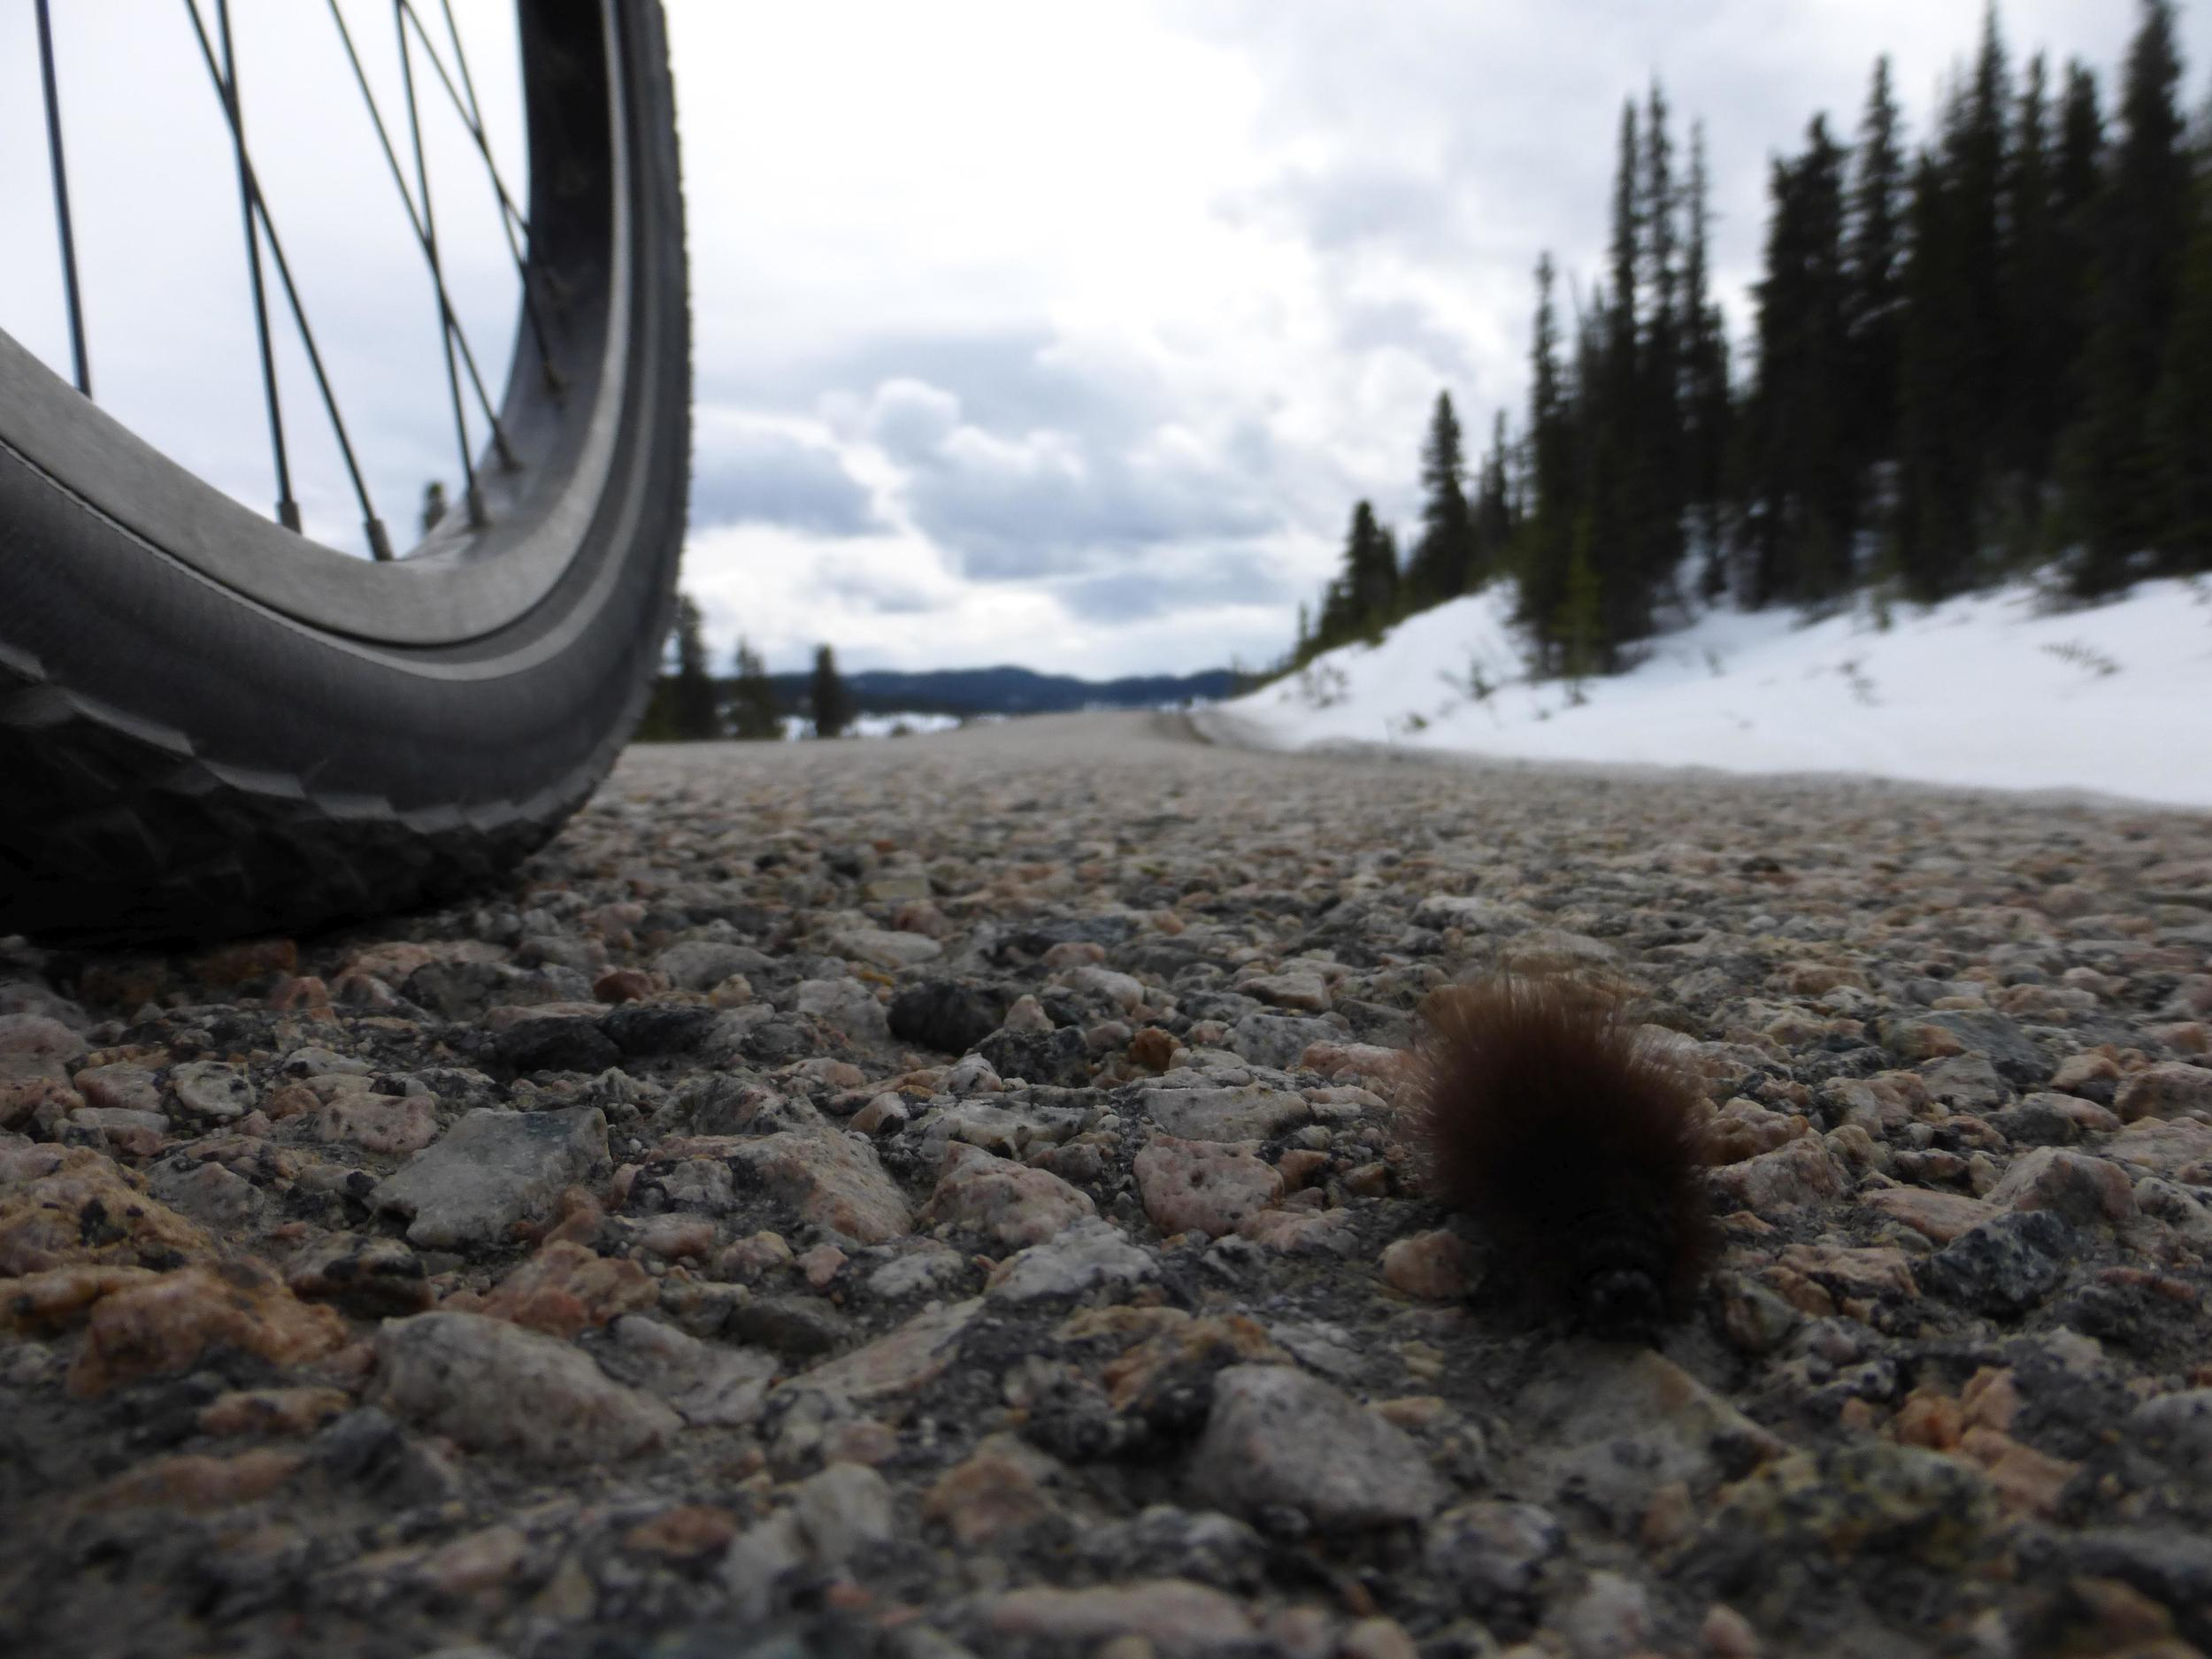 One fluffy crawlie on the road.